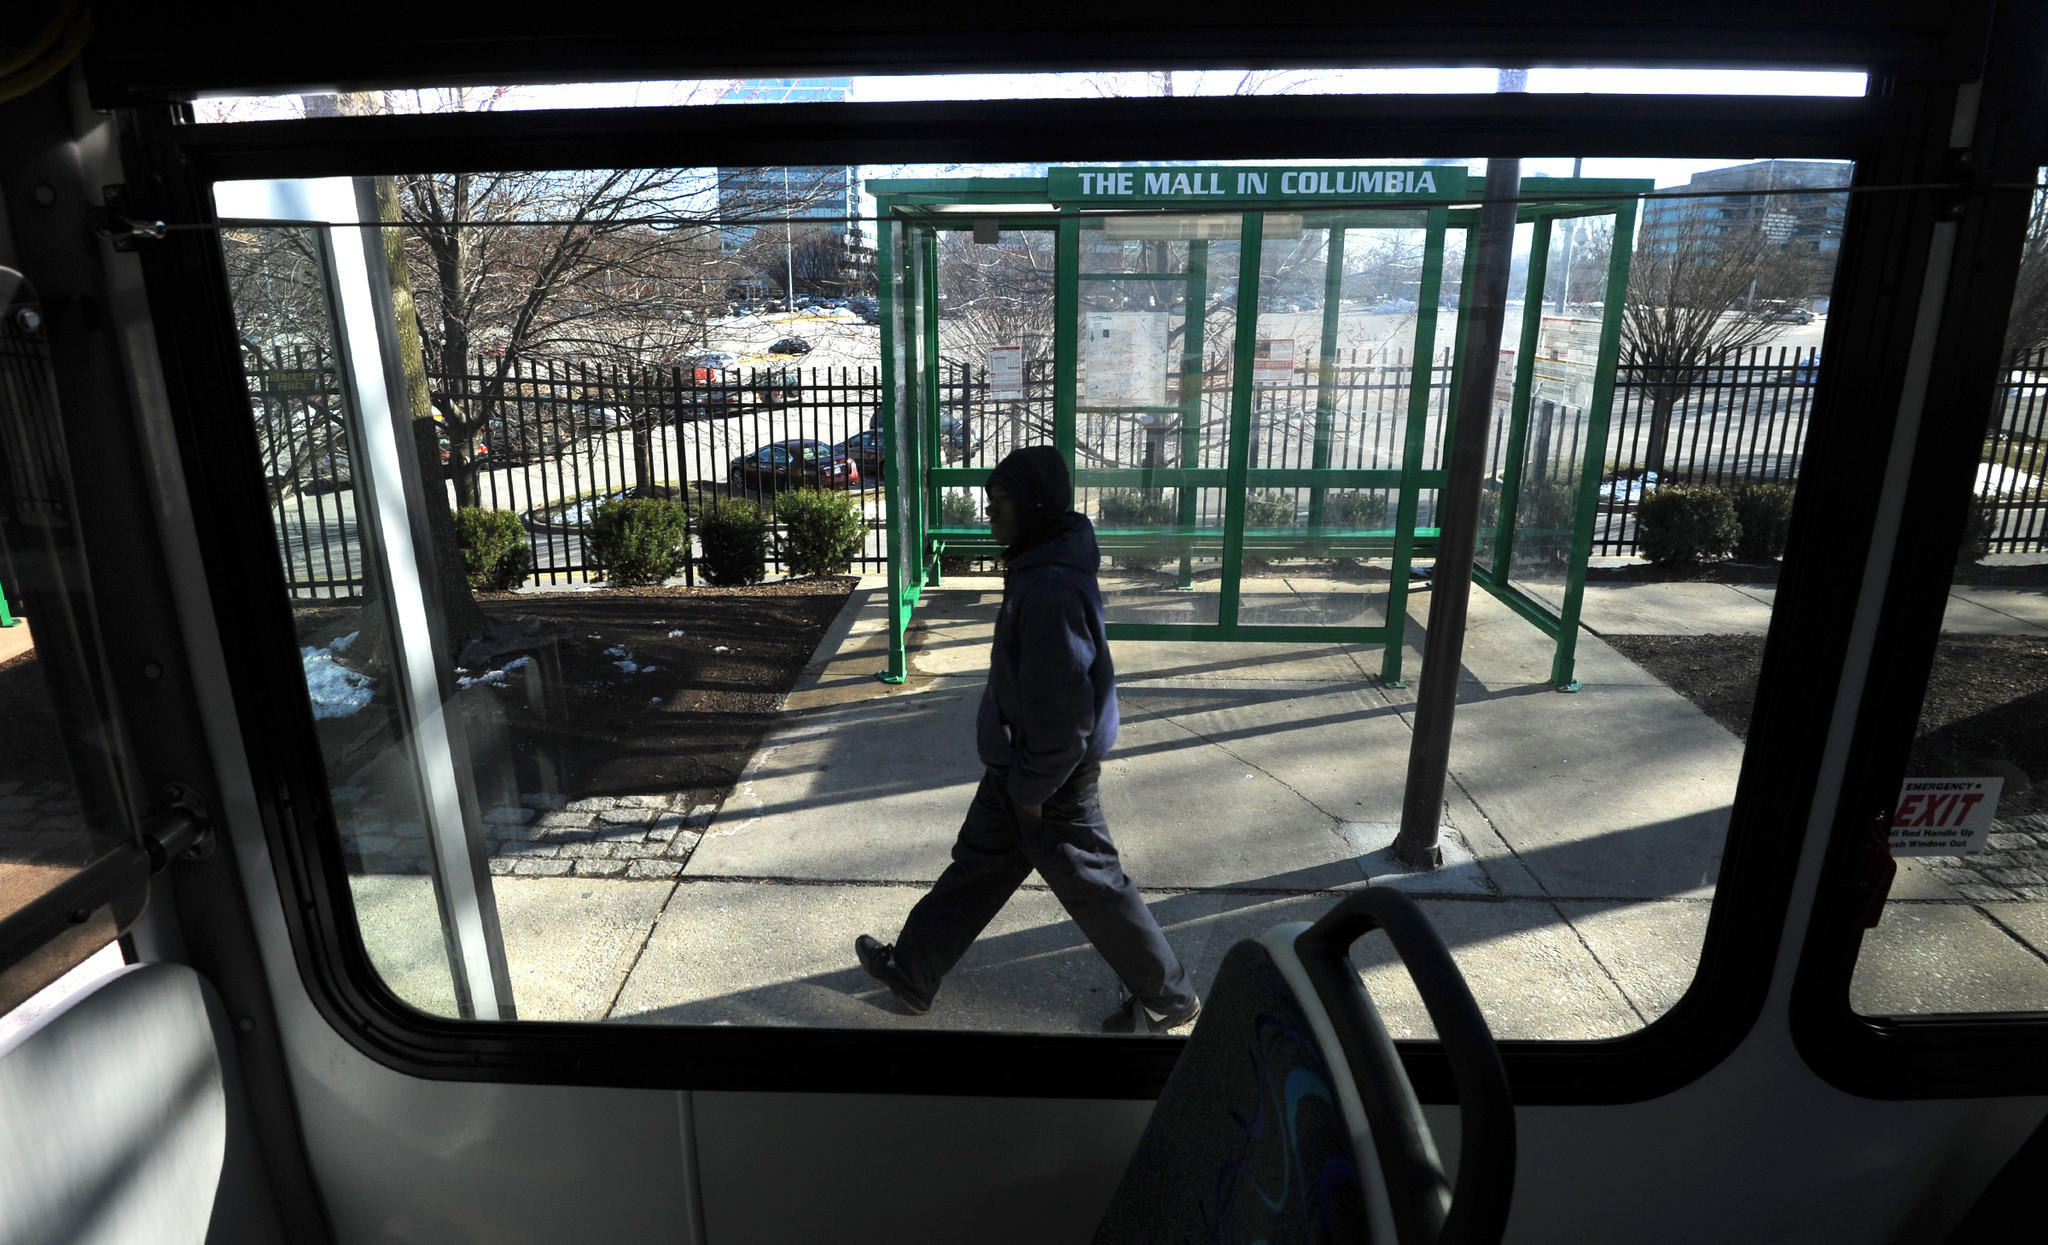 A pedestrian walks by the regional transit agency bus at the Columbia Mall near Sears.